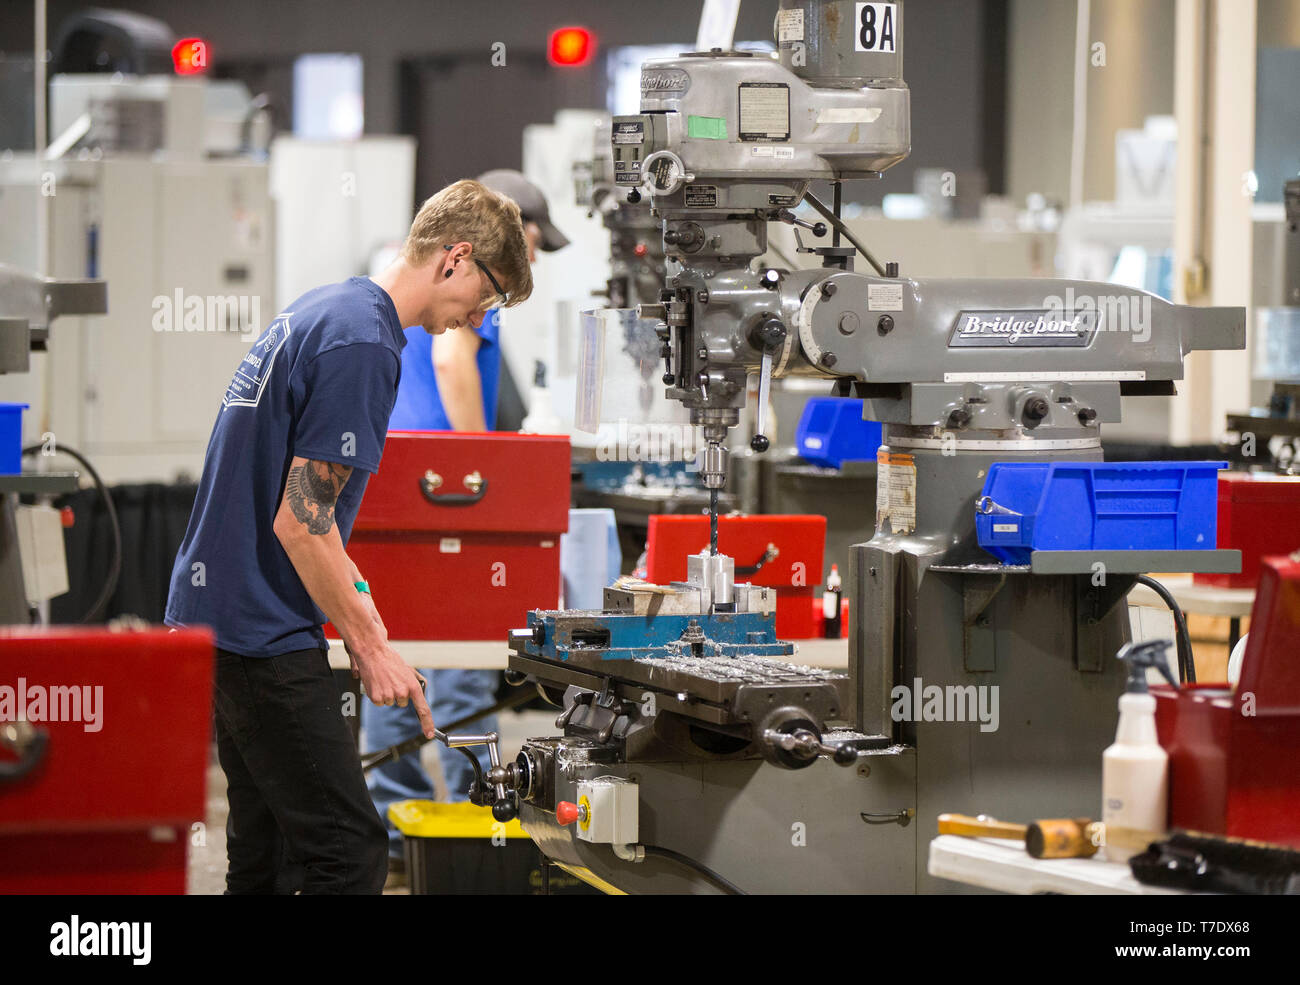 Toronto, Canada. 6th May, 2019. A student competes during the precision machining sector of the 2019 Skills Ontario Competition in Toronto, Canada, on May 6, 2019. The 2019 Skills Ontario Competition kicked off here on Monday, attracting more than 2,400 competitors. A broad range of skills and careers are represented at the three-day competition from across the manufacturing, transportation, construction, service, and technology sectors. Credit: Zou Zheng/Xinhua/Alamy Live News - Stock Image